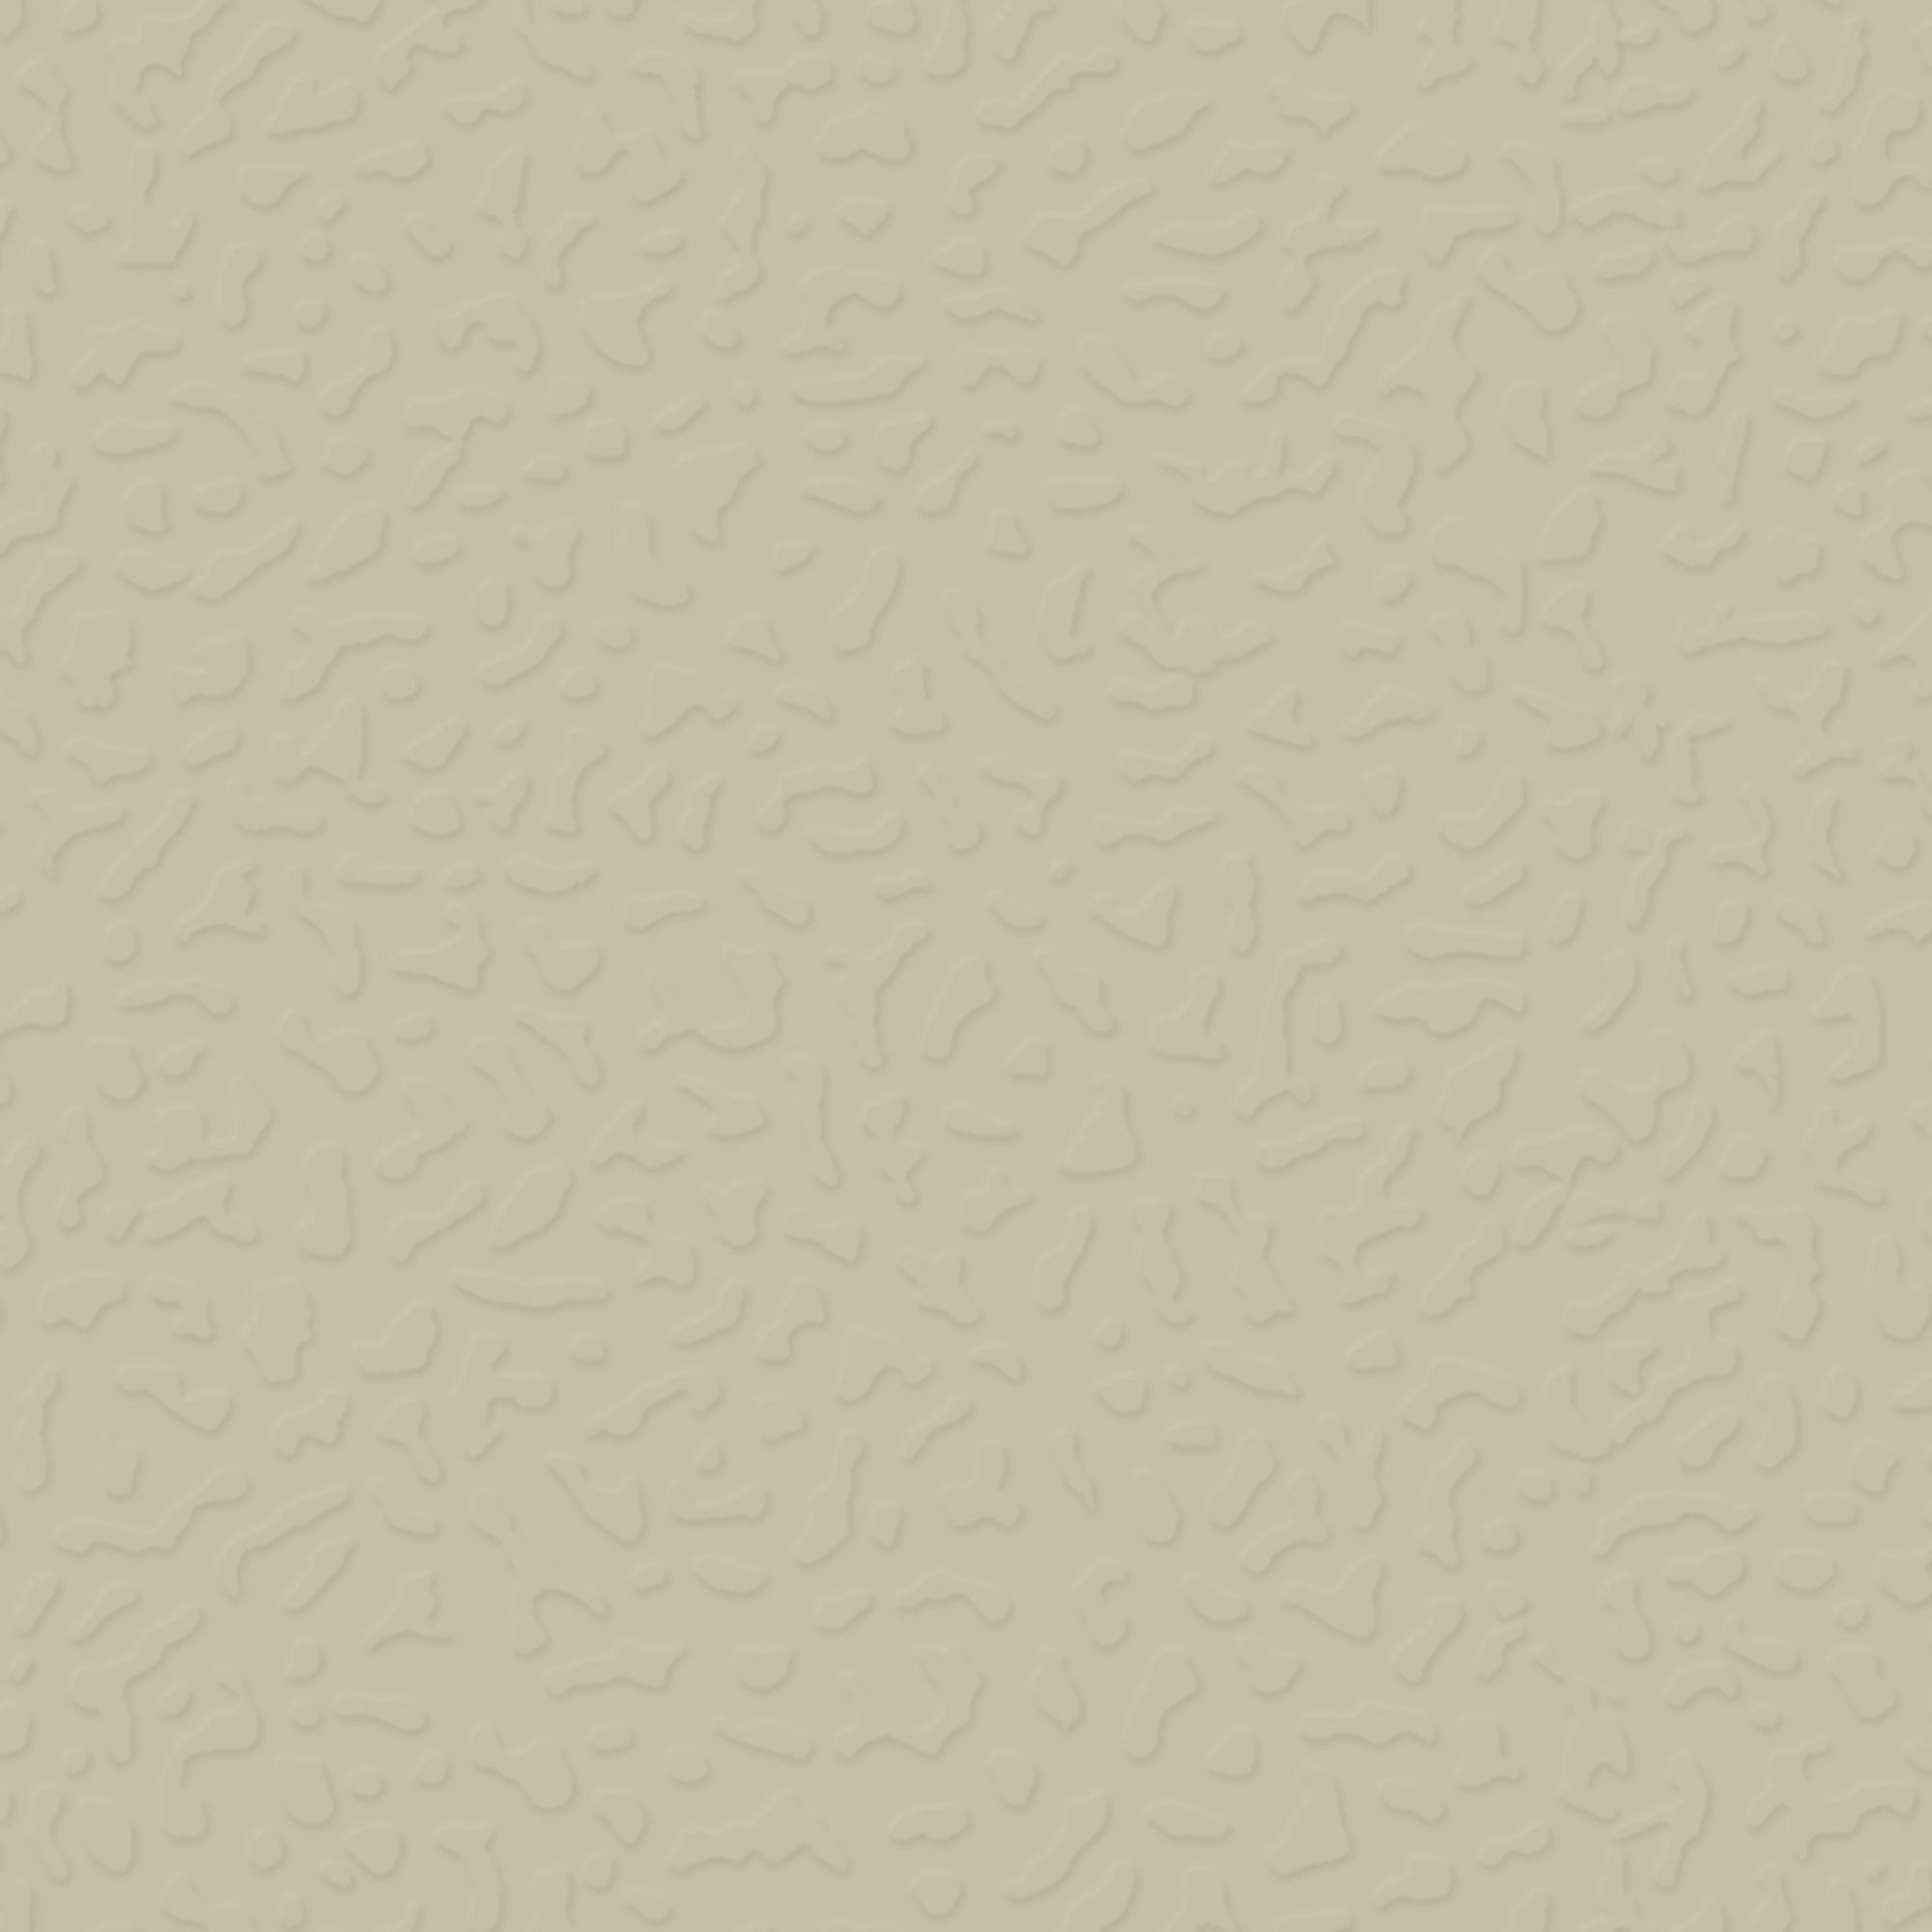 Roppe Rubber Tile 900 - Textured Design (993) Almond LB996184